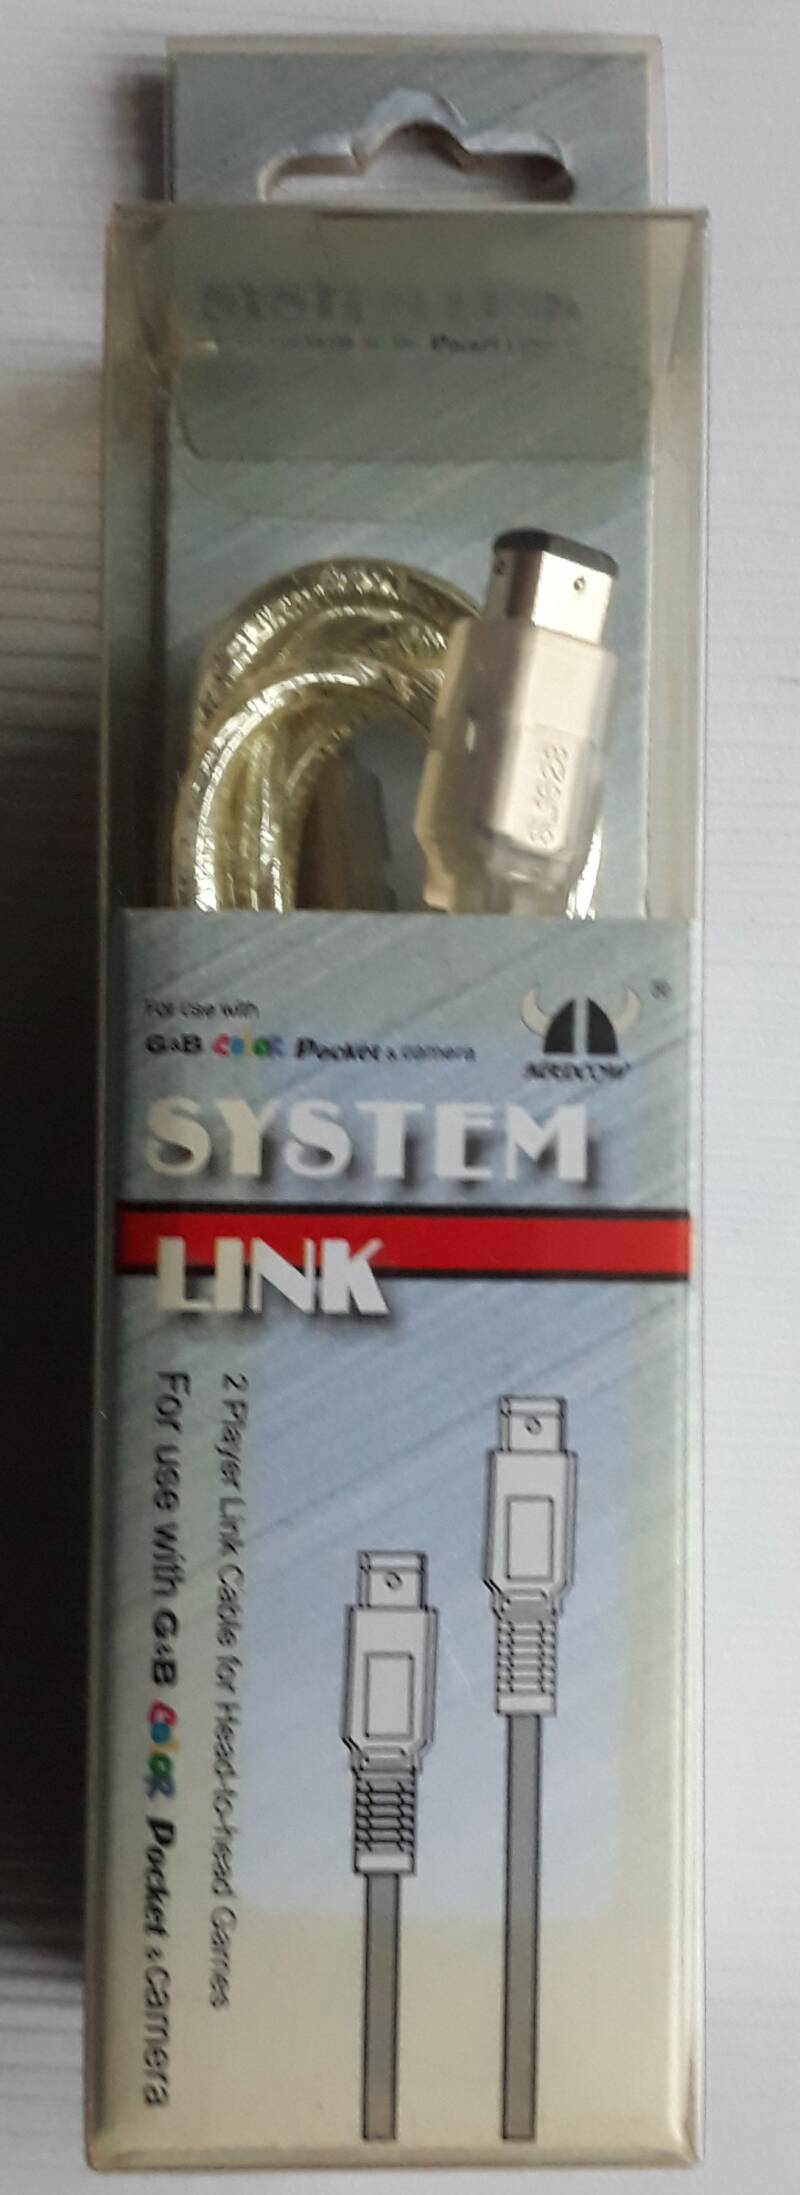 Game Boy Color - System Link cable (region free)